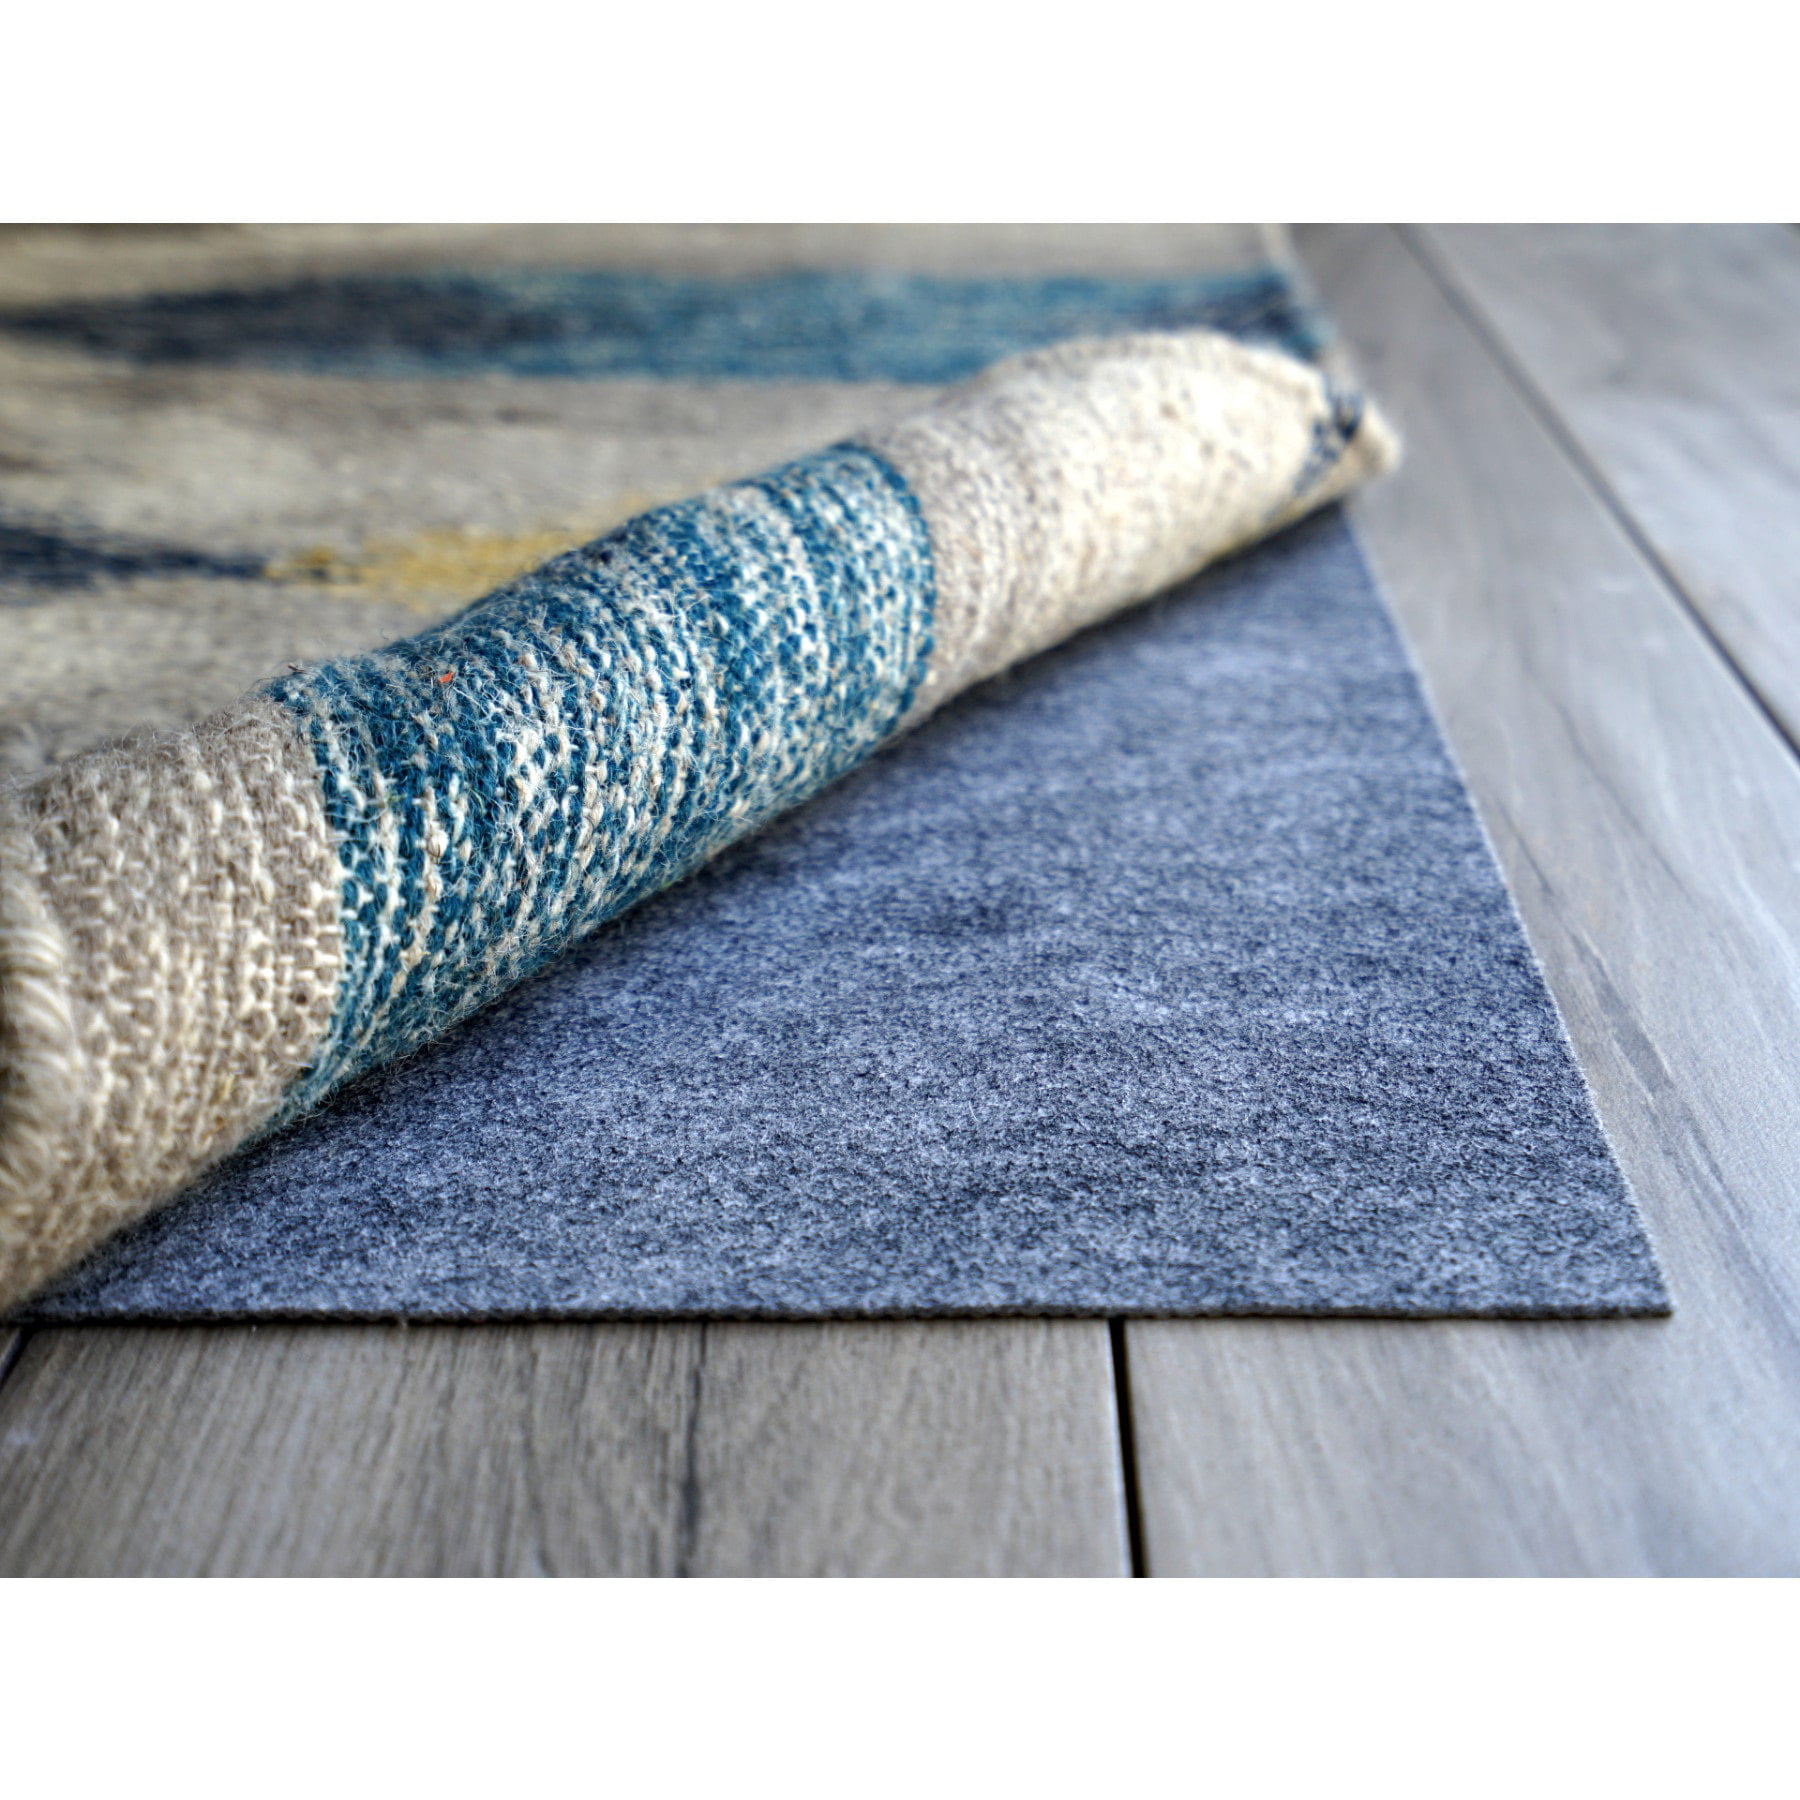 Rug Pad USA AnchorPro Low Profile Non-slip Felt & Rubber Rug Pad (7' x 7') by Overstock